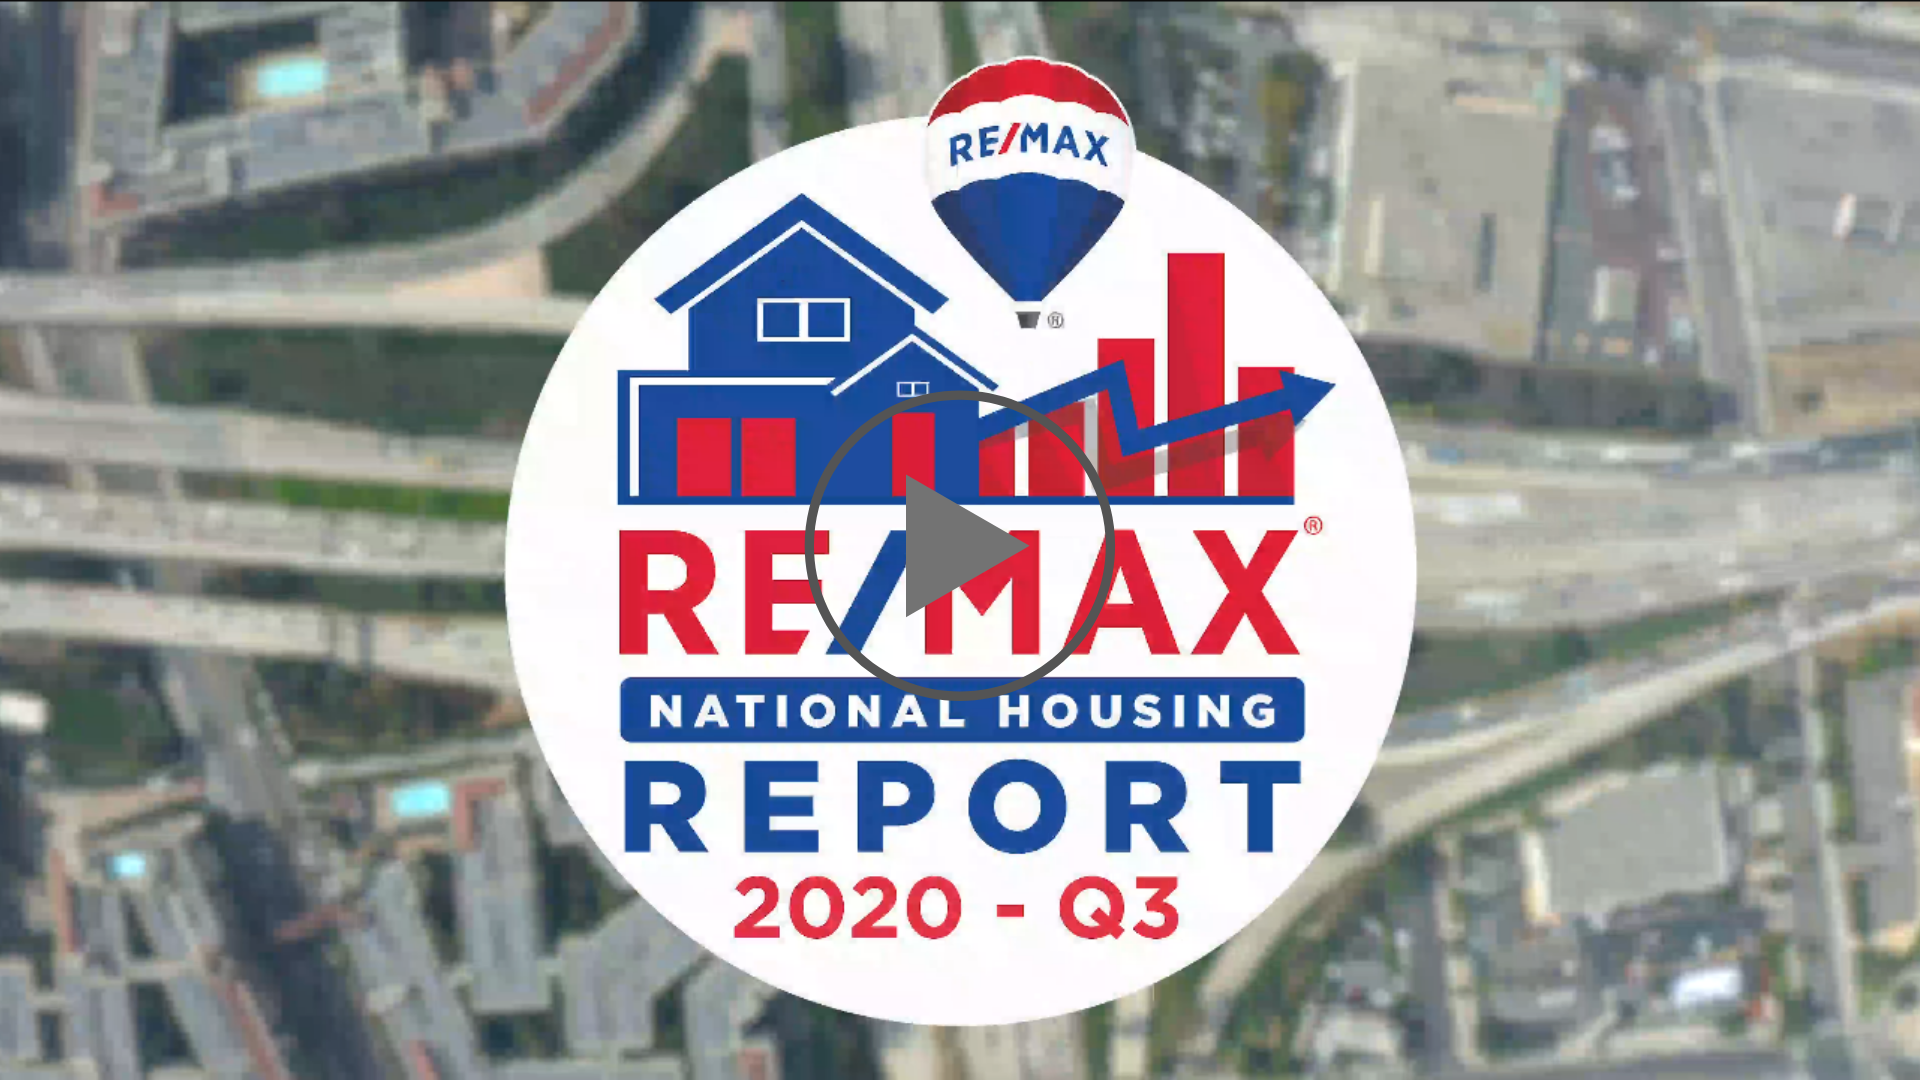 PROMISING PROPERTY MARKET RECOVERY POST LOCKDOWN  RE/MAX National Housing Report Q3 2020